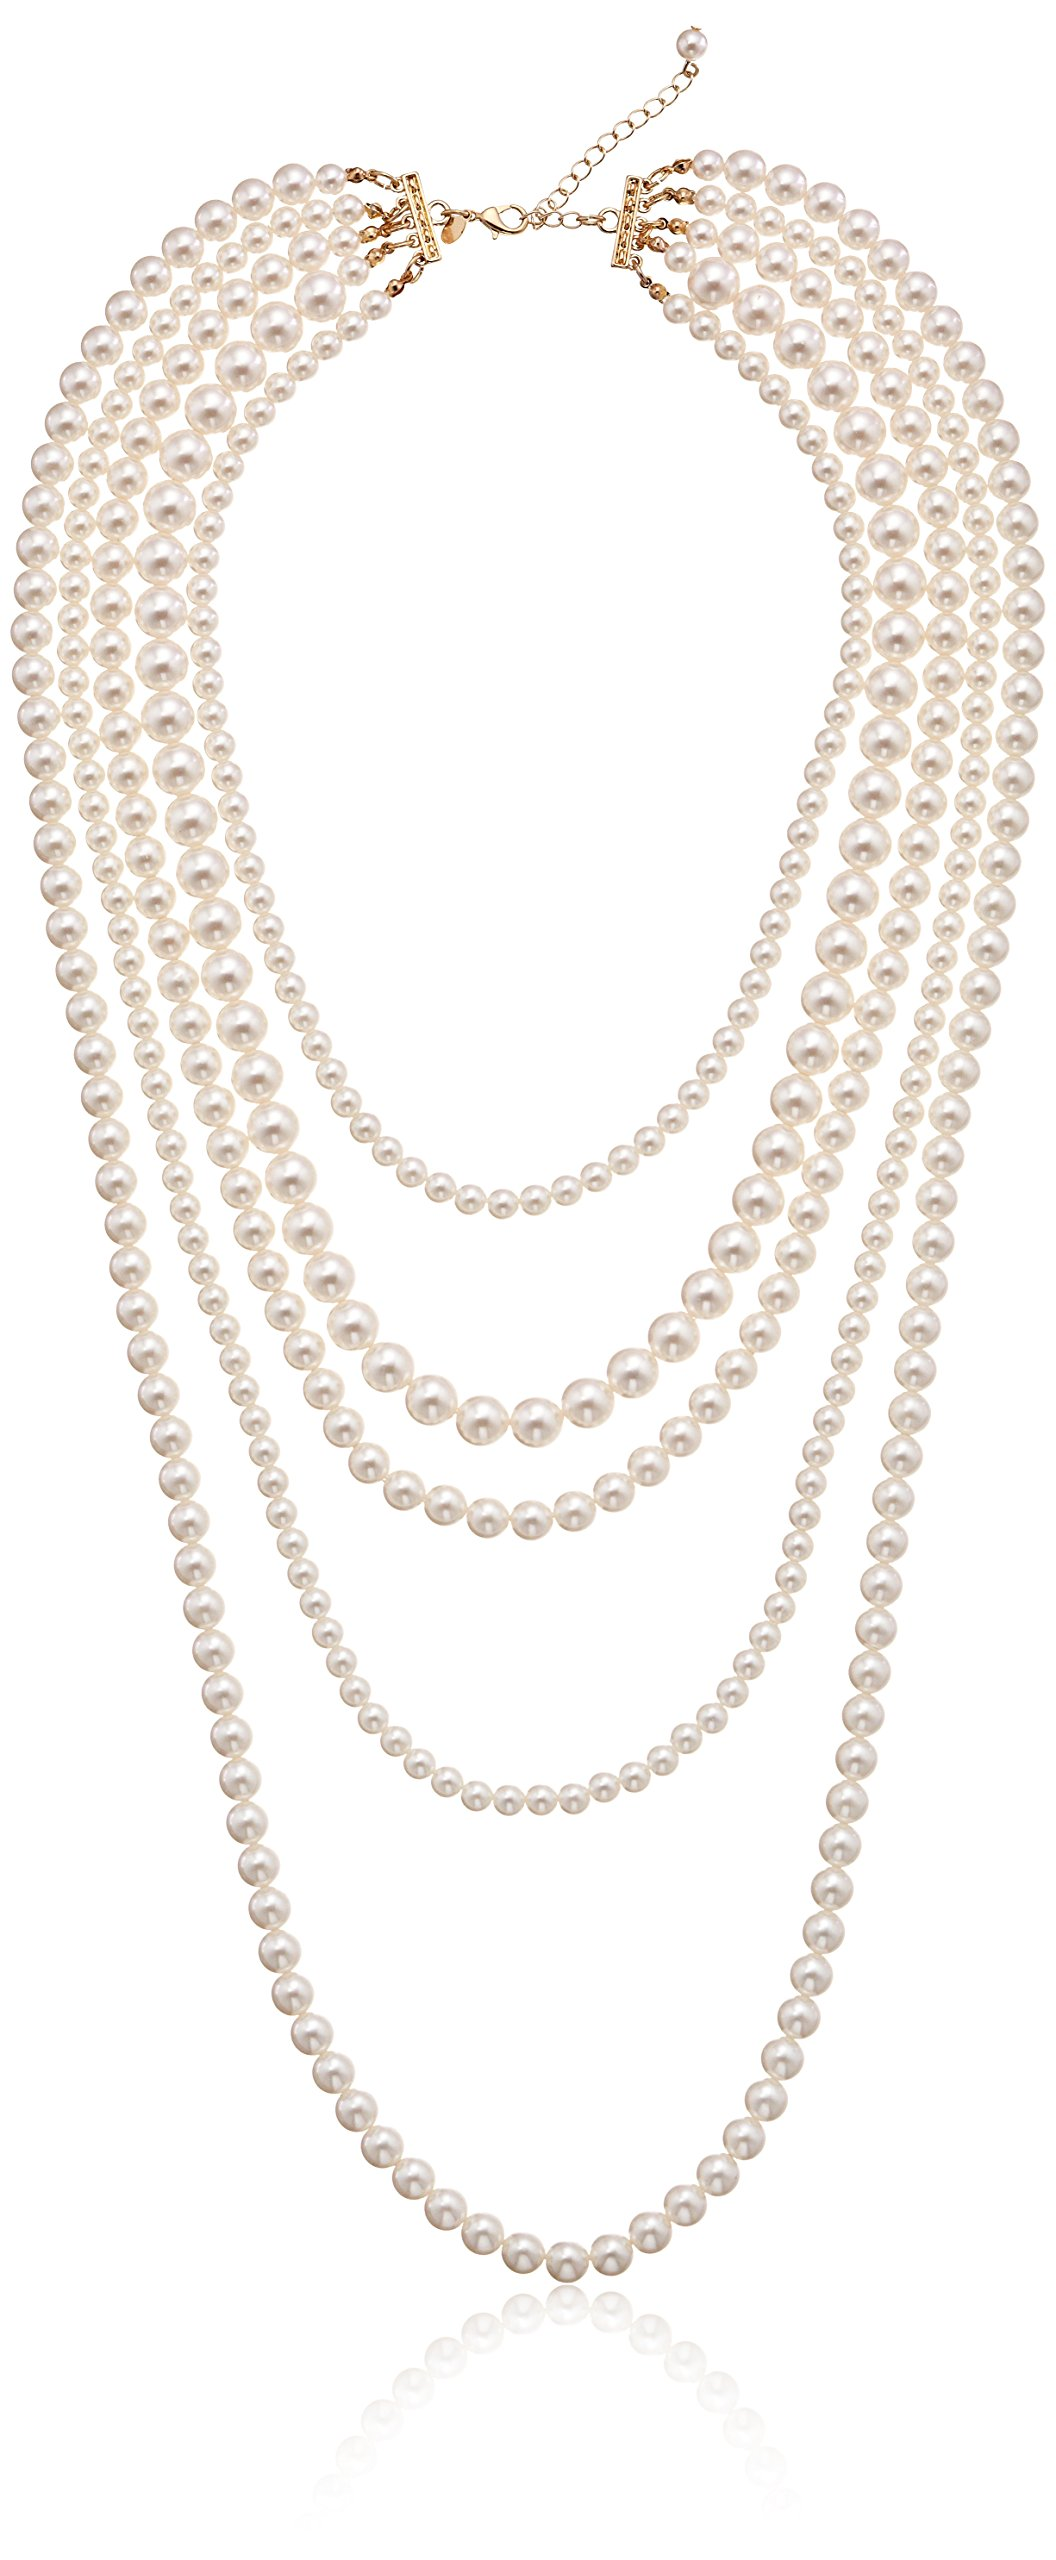 Gold-Tone Cream Color Pearl Multi-Strand Necklace, 34''+2'' by Amazon Collection (Image #1)